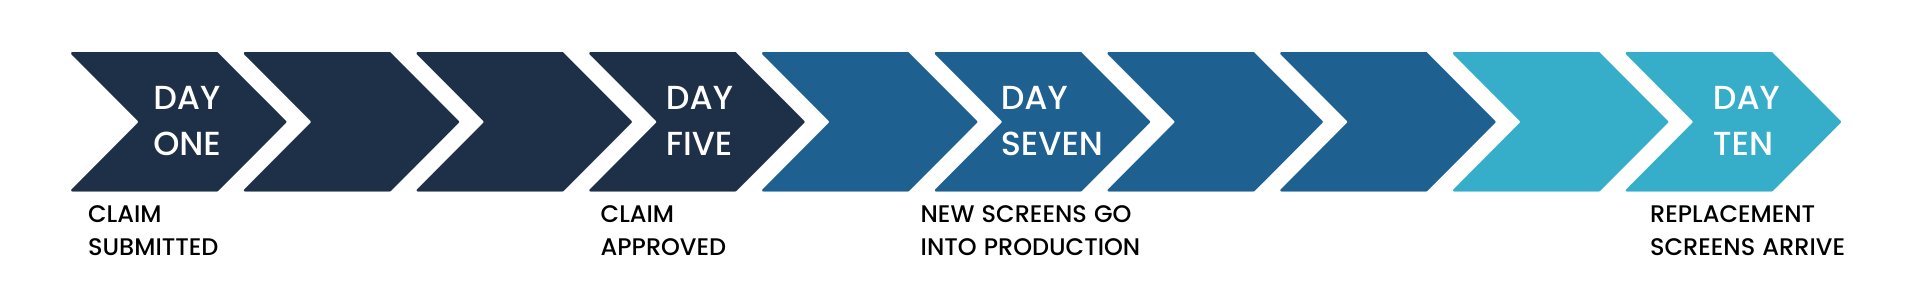 Screen Replacement Timeline